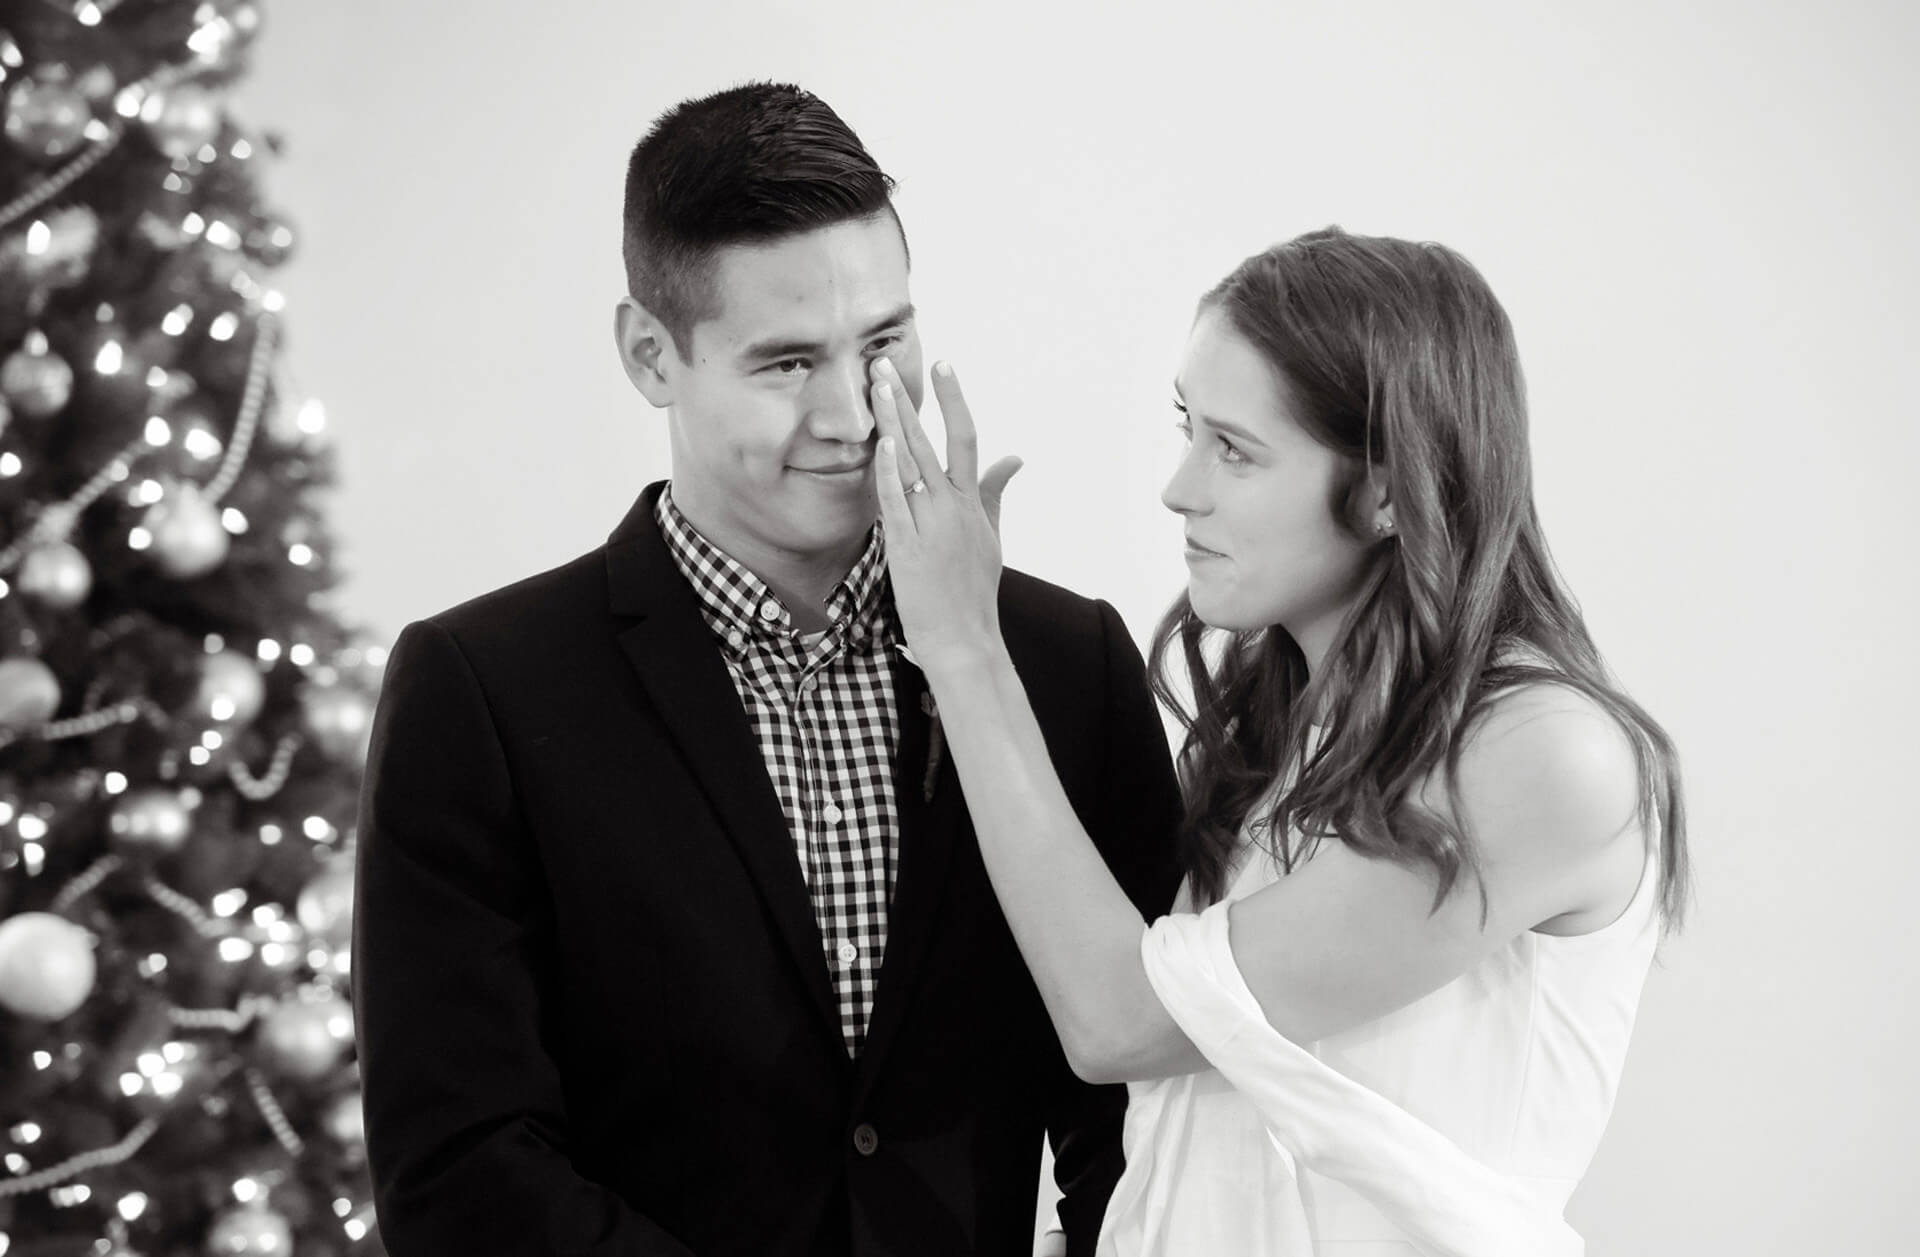 The bride wipes a tear away from the groom's eye during their intimate Troy, Michigan wedding.